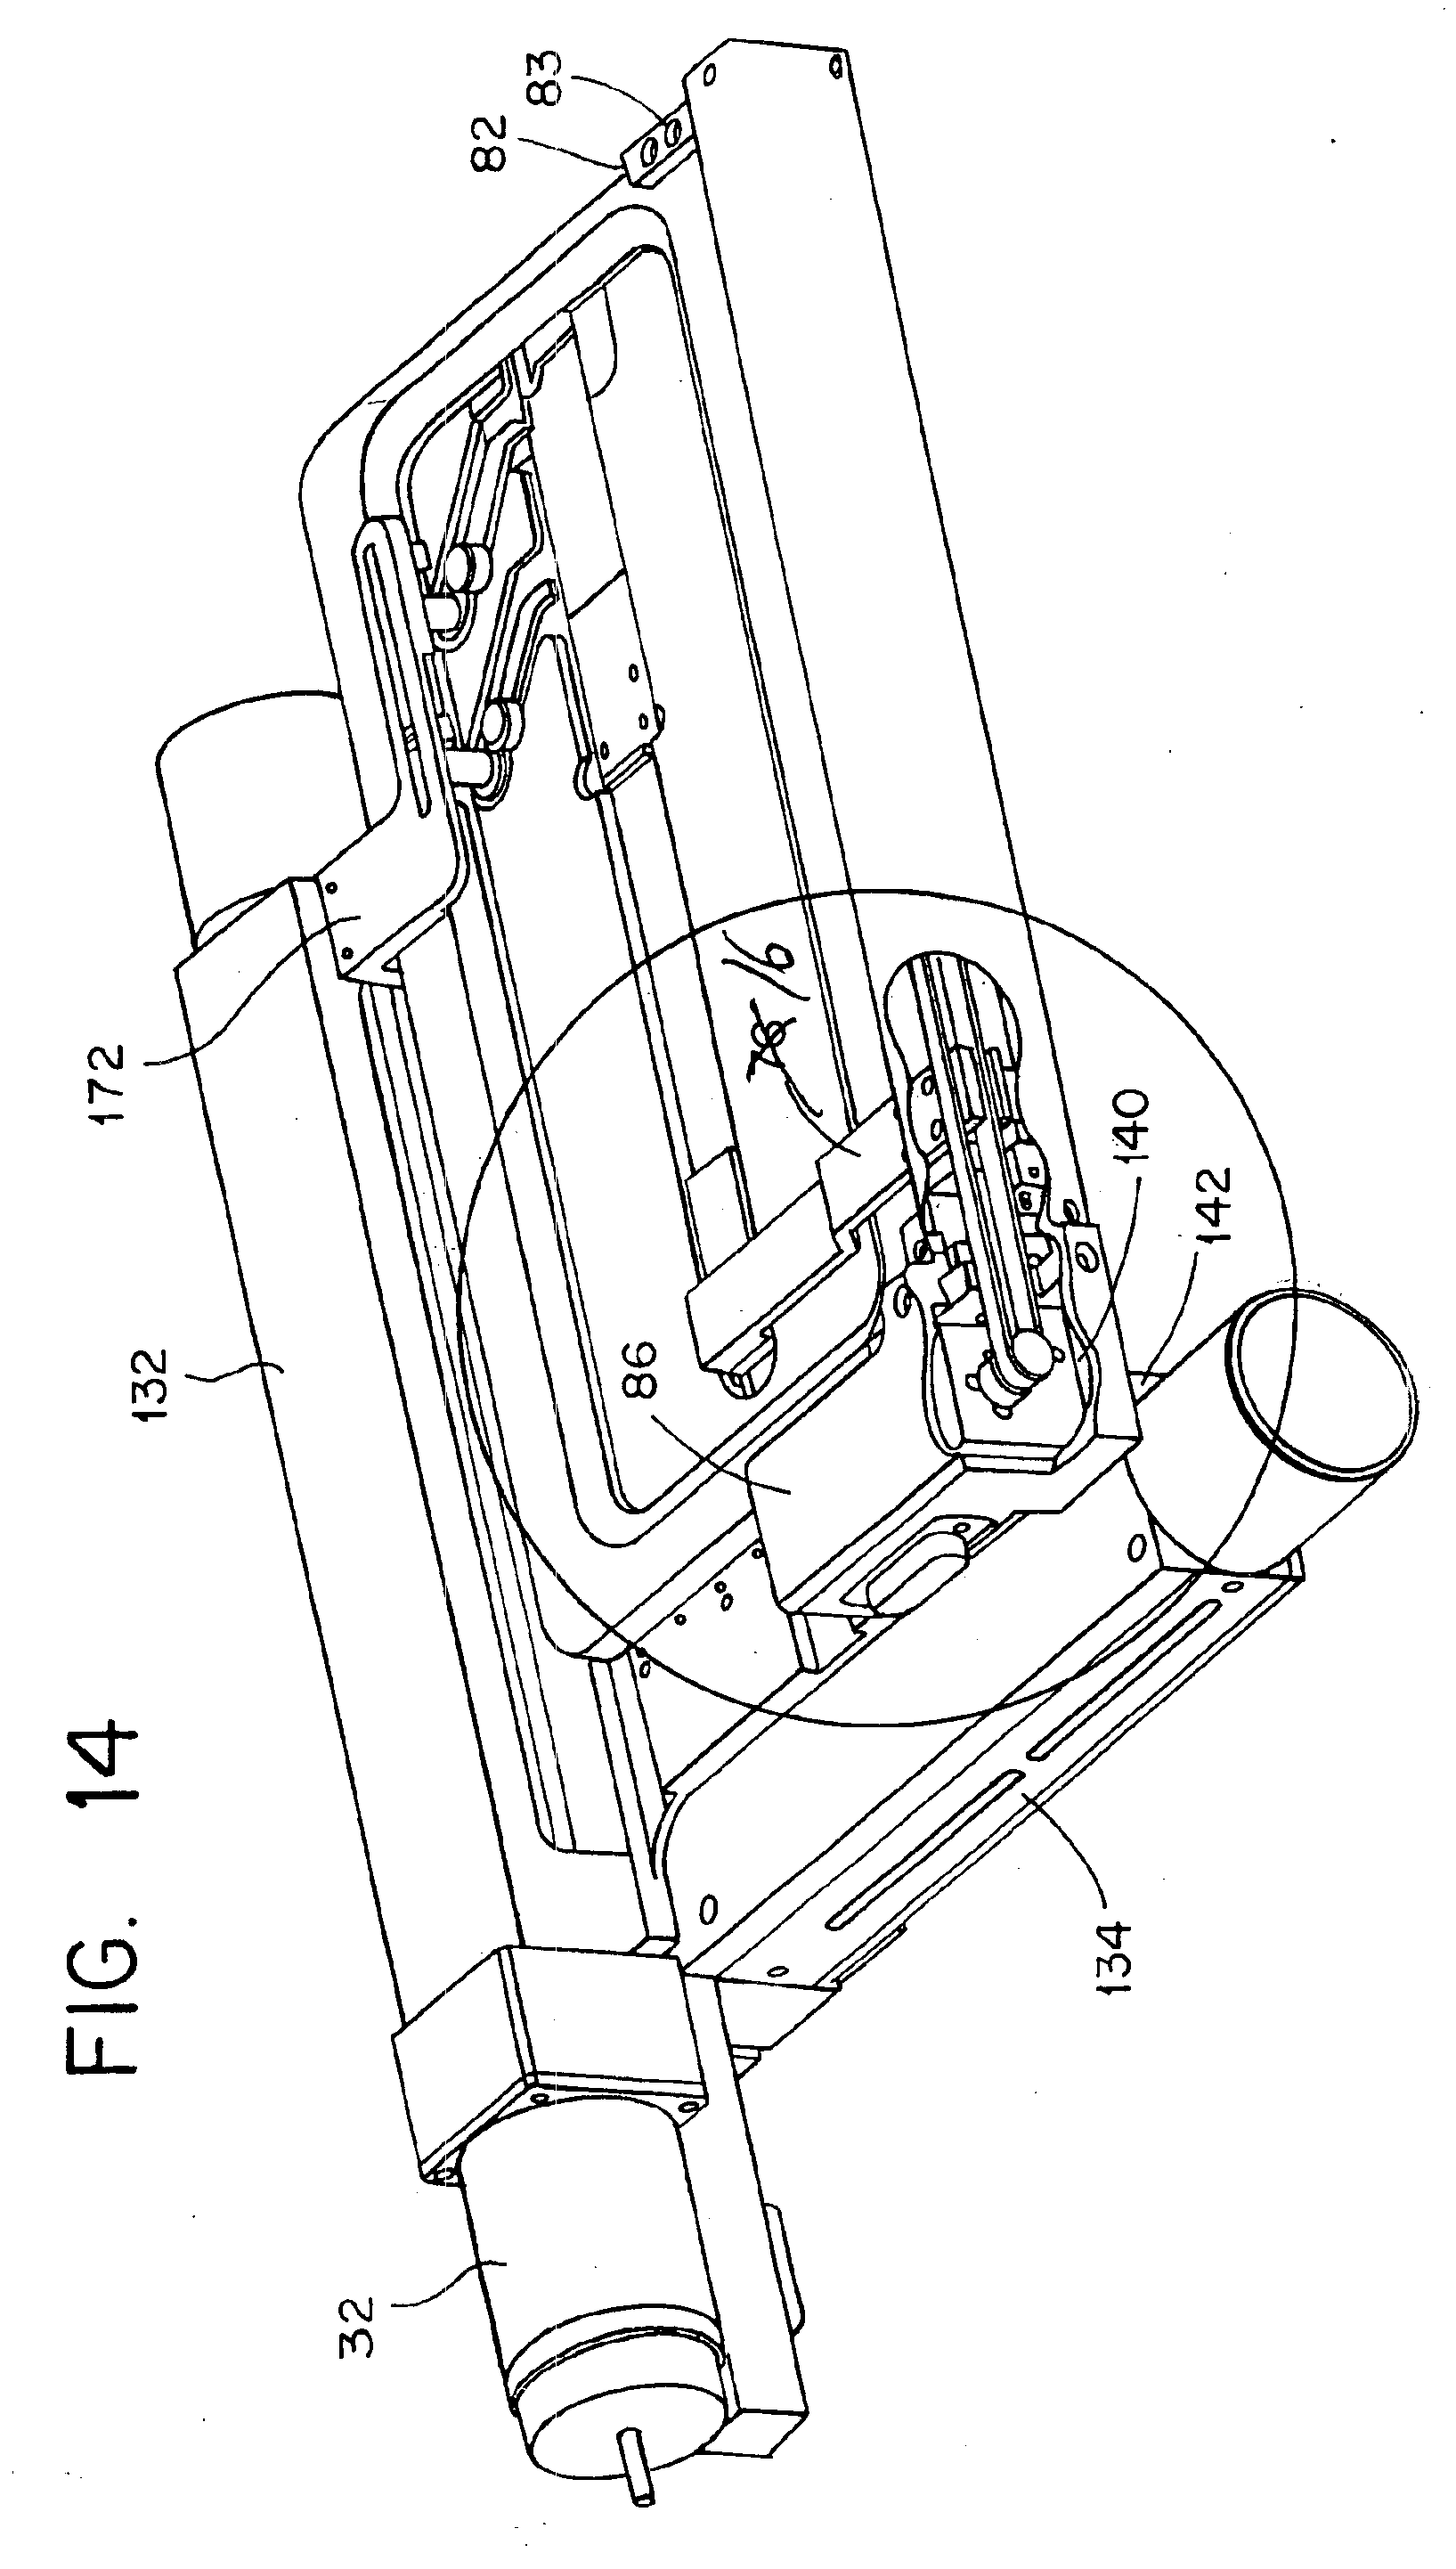 83 Accord Wiring Diagram Patent Us6847481 Automated Slide Loader Cassette For Microscope Drawing